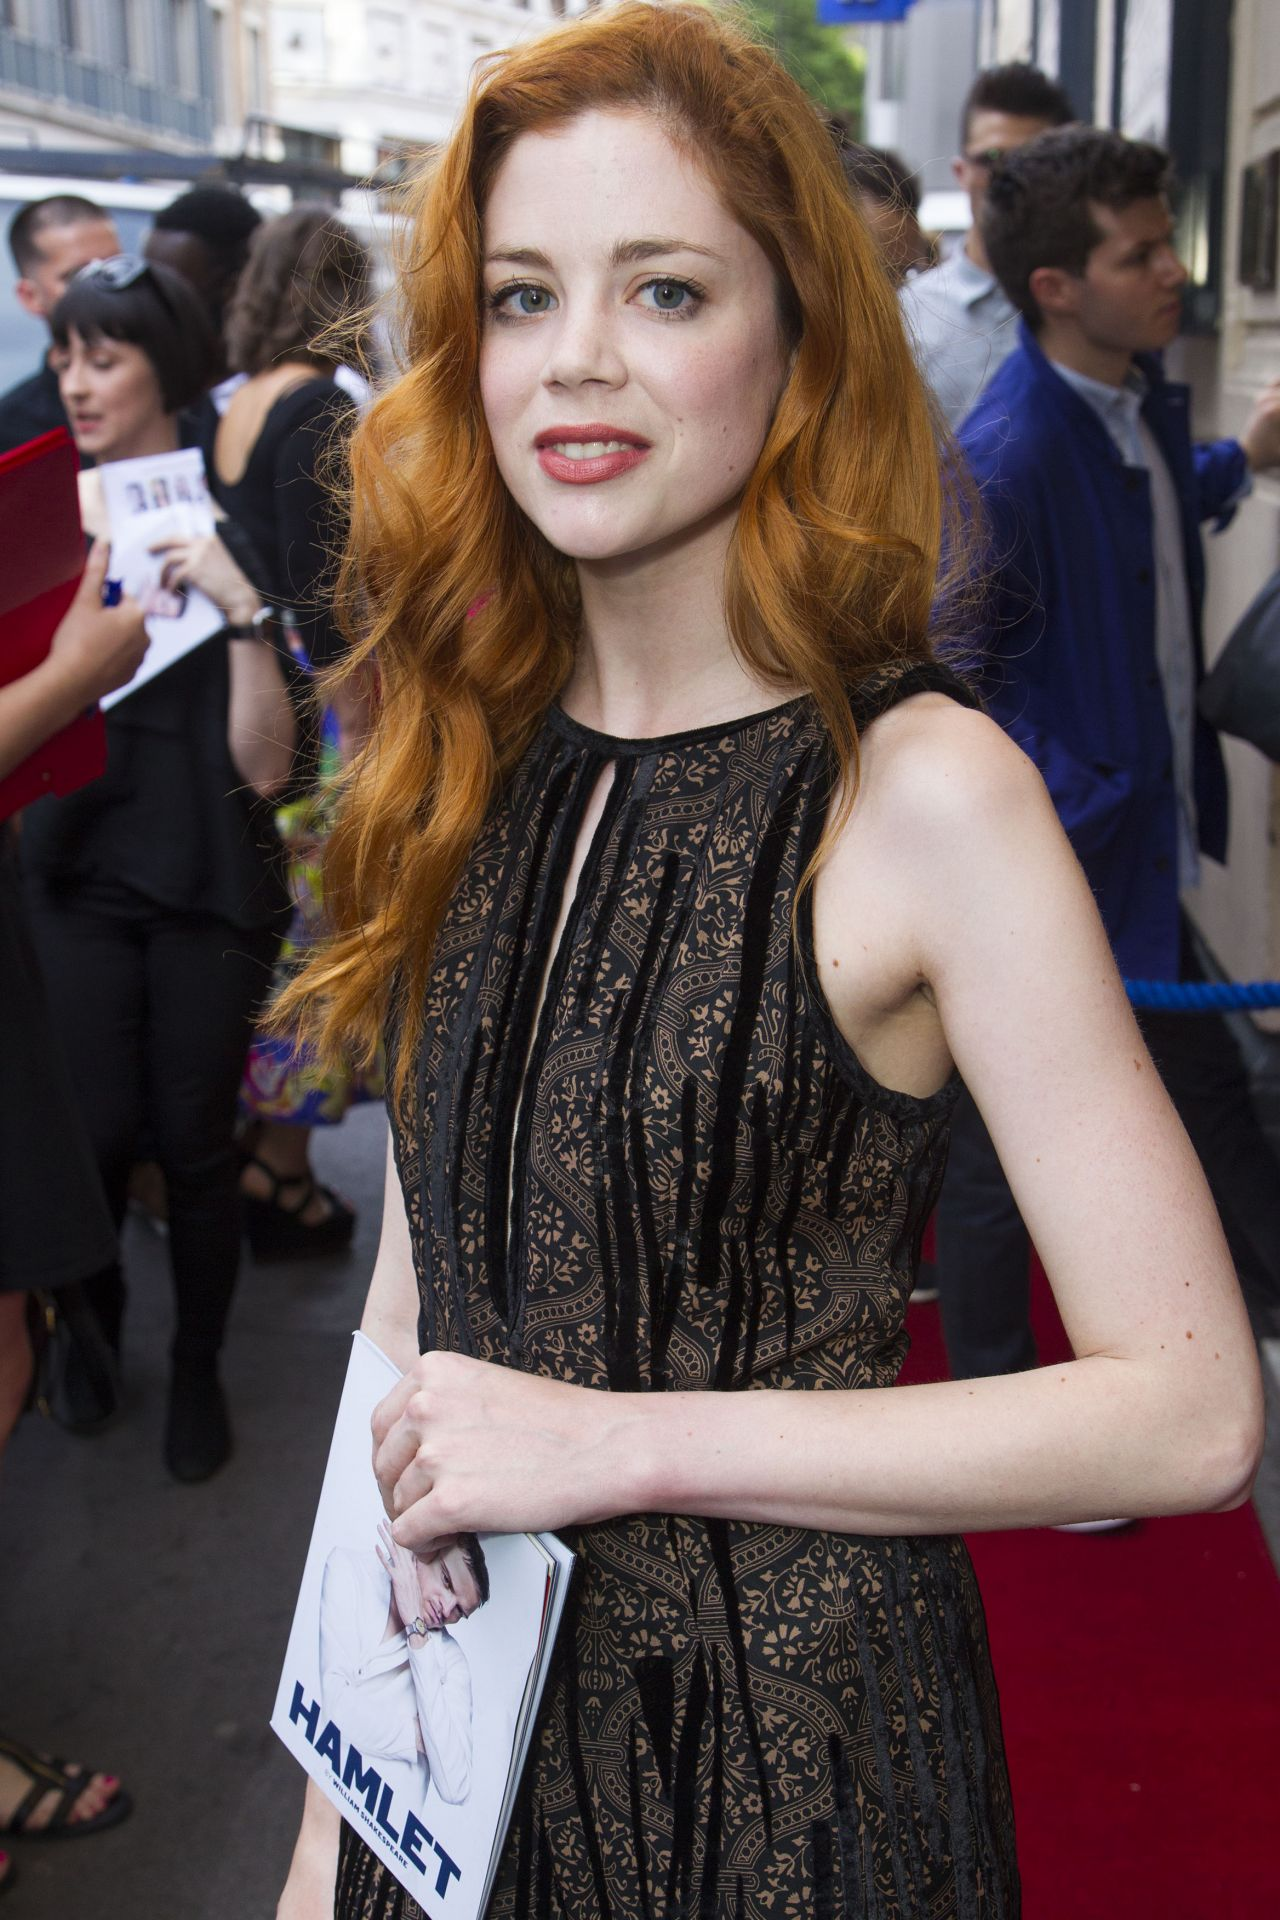 Pictures Charlotte Hope nudes (74 photo), Ass, Bikini, Twitter, braless 2015